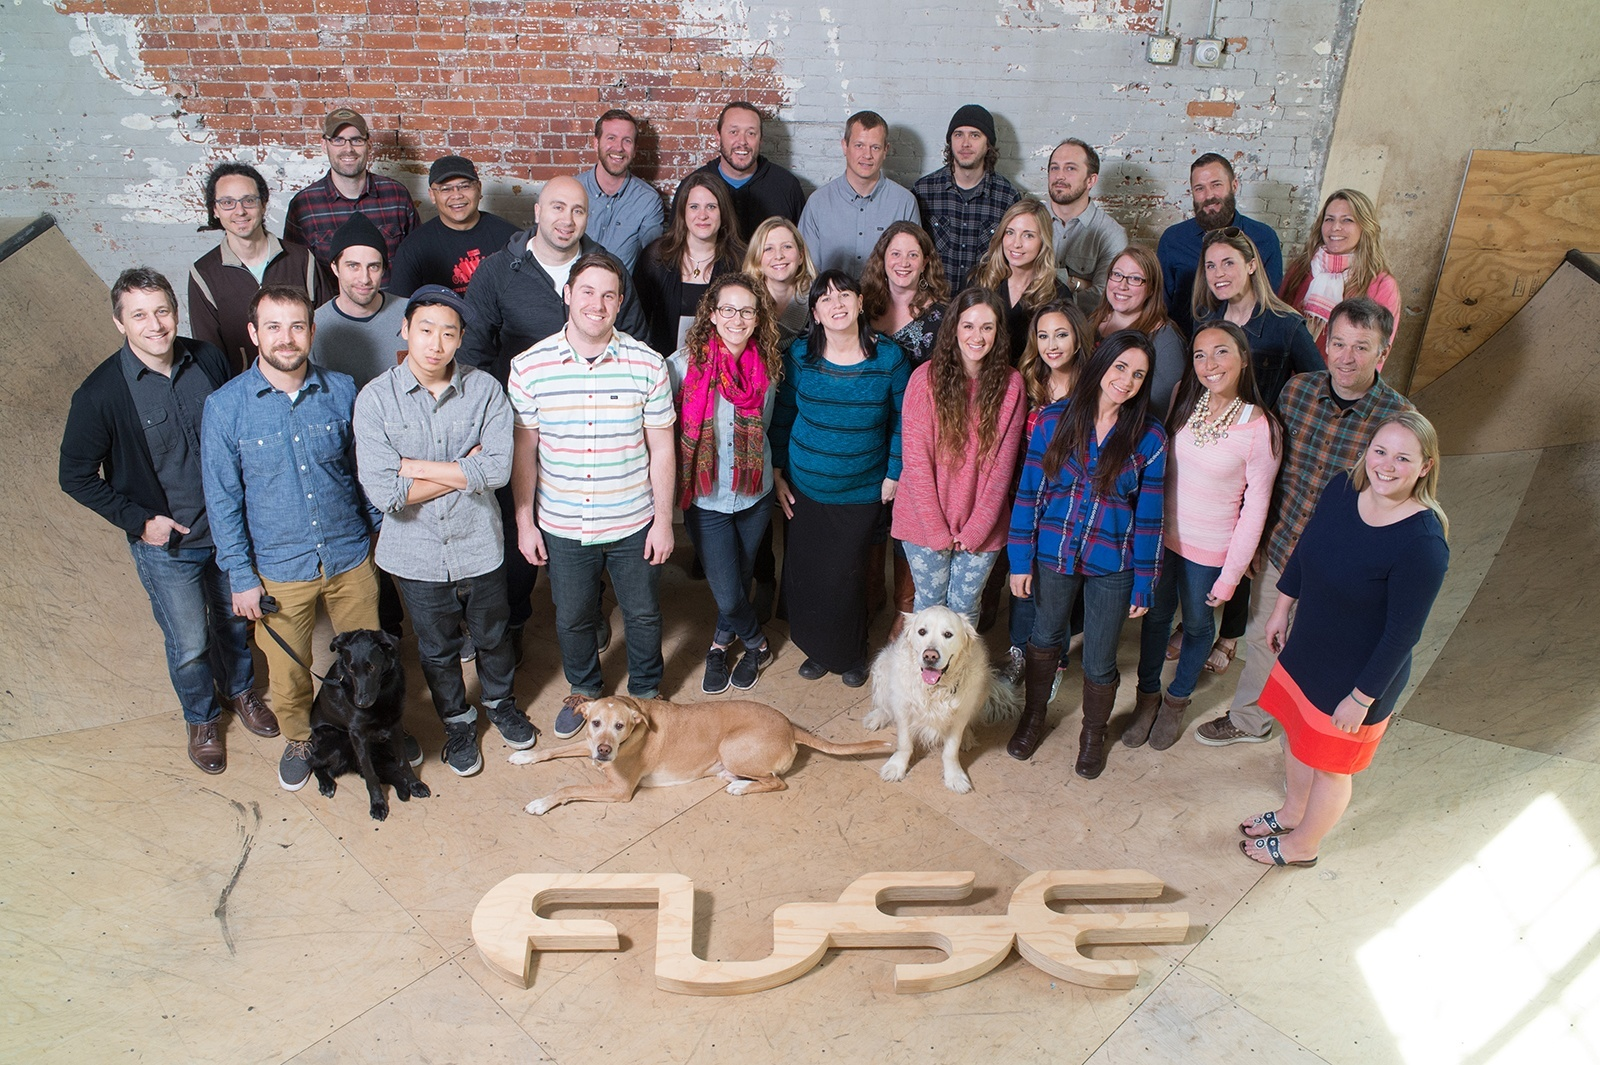 fuse-vermont-office-1